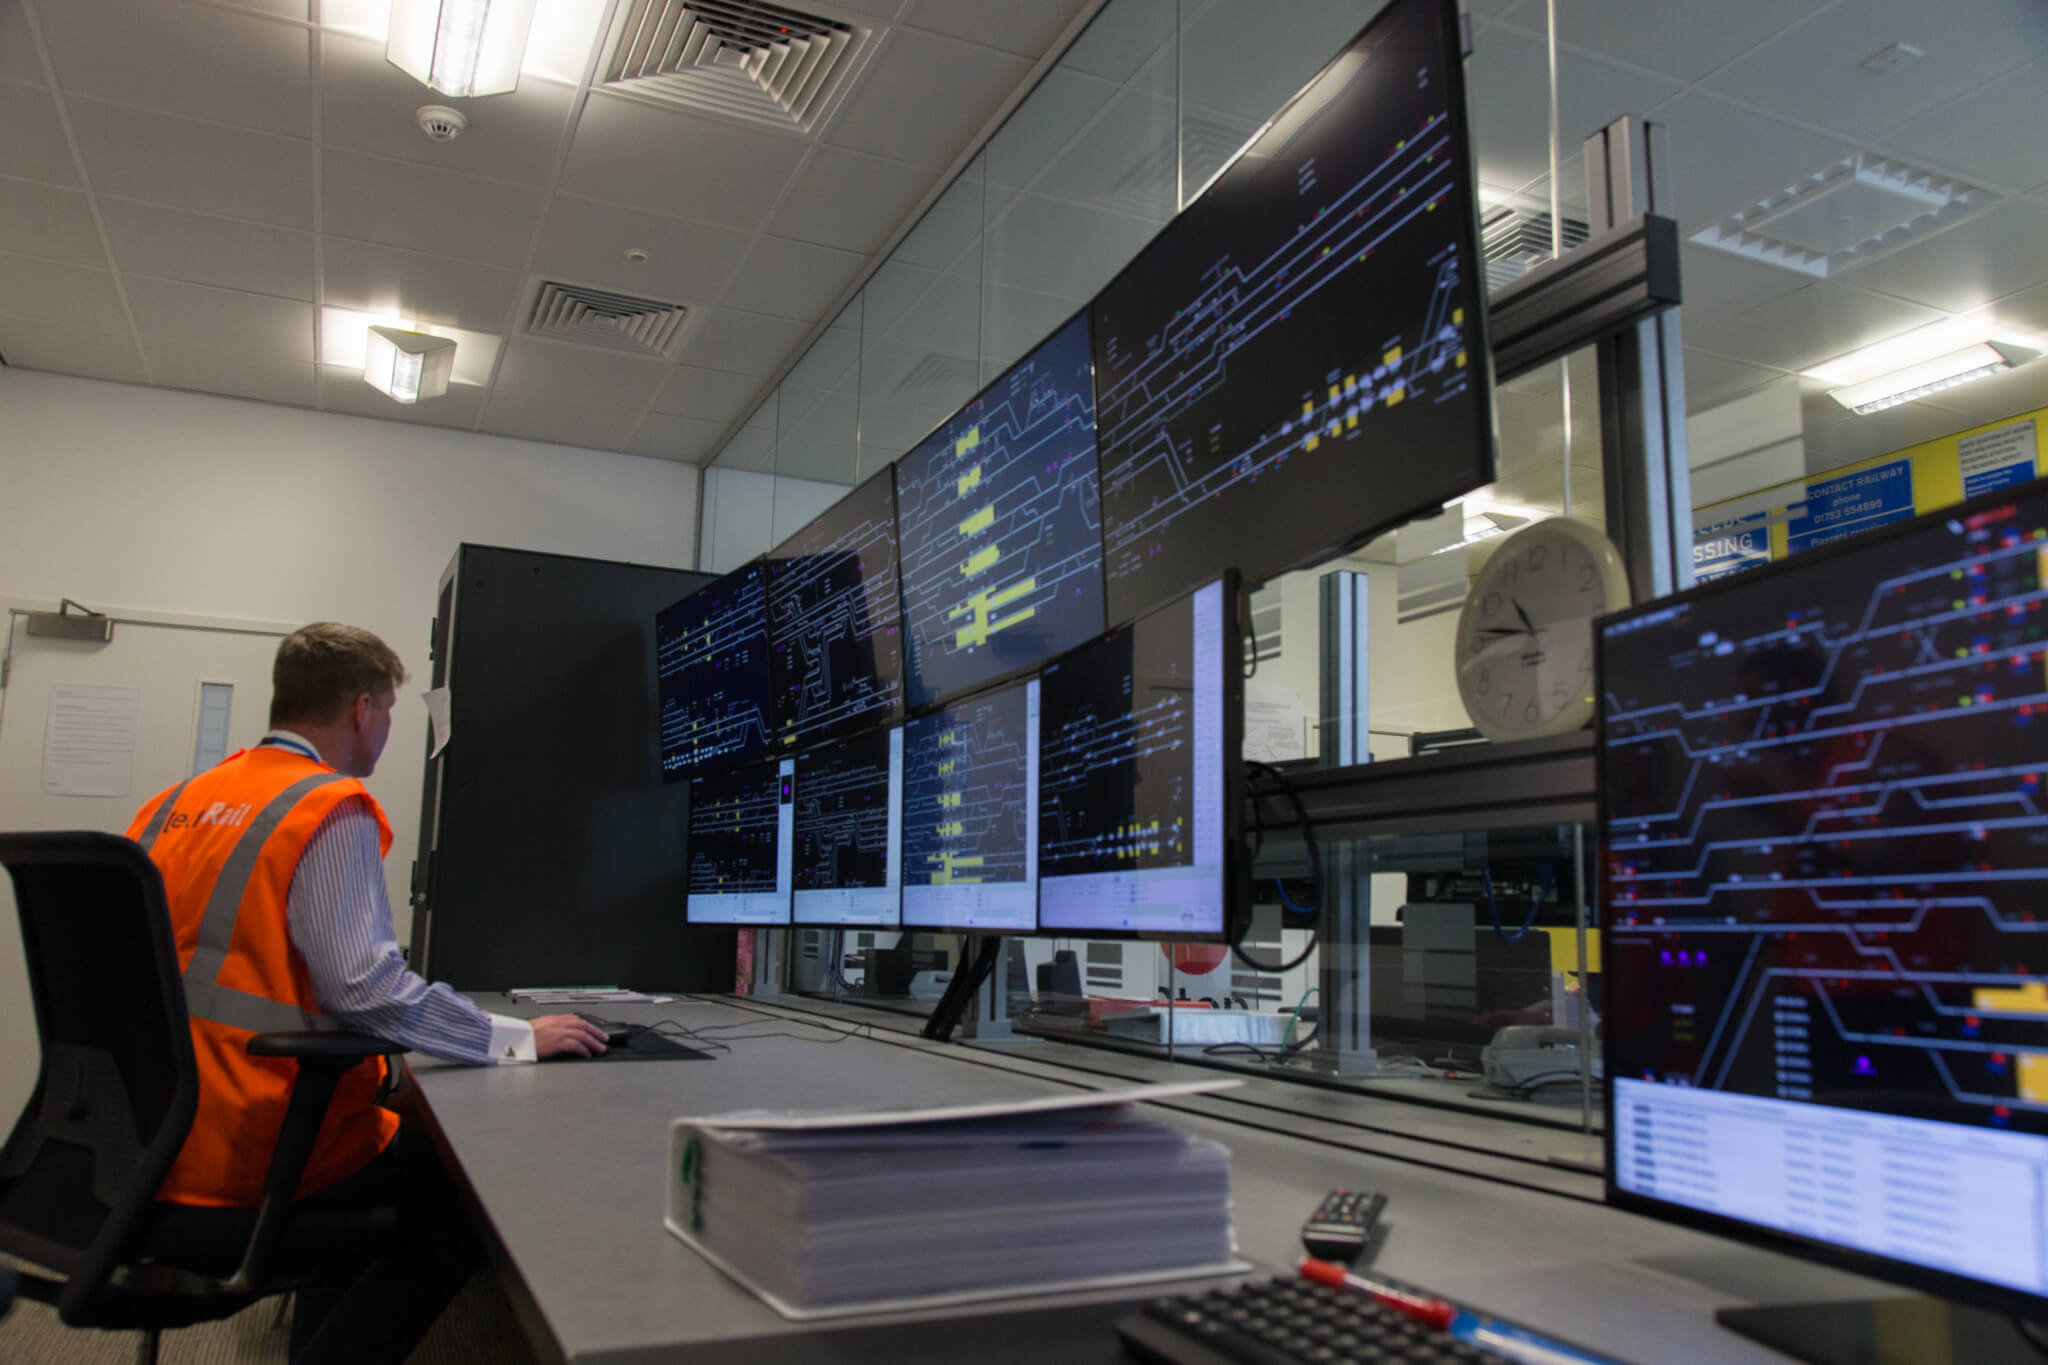 rail control solutions Operations control systems and rail-it solutions one of the greatest challenges of our times is to ensure cost-effective, sustainable mobility and, at the same time, provide attractive offers for rail customers.